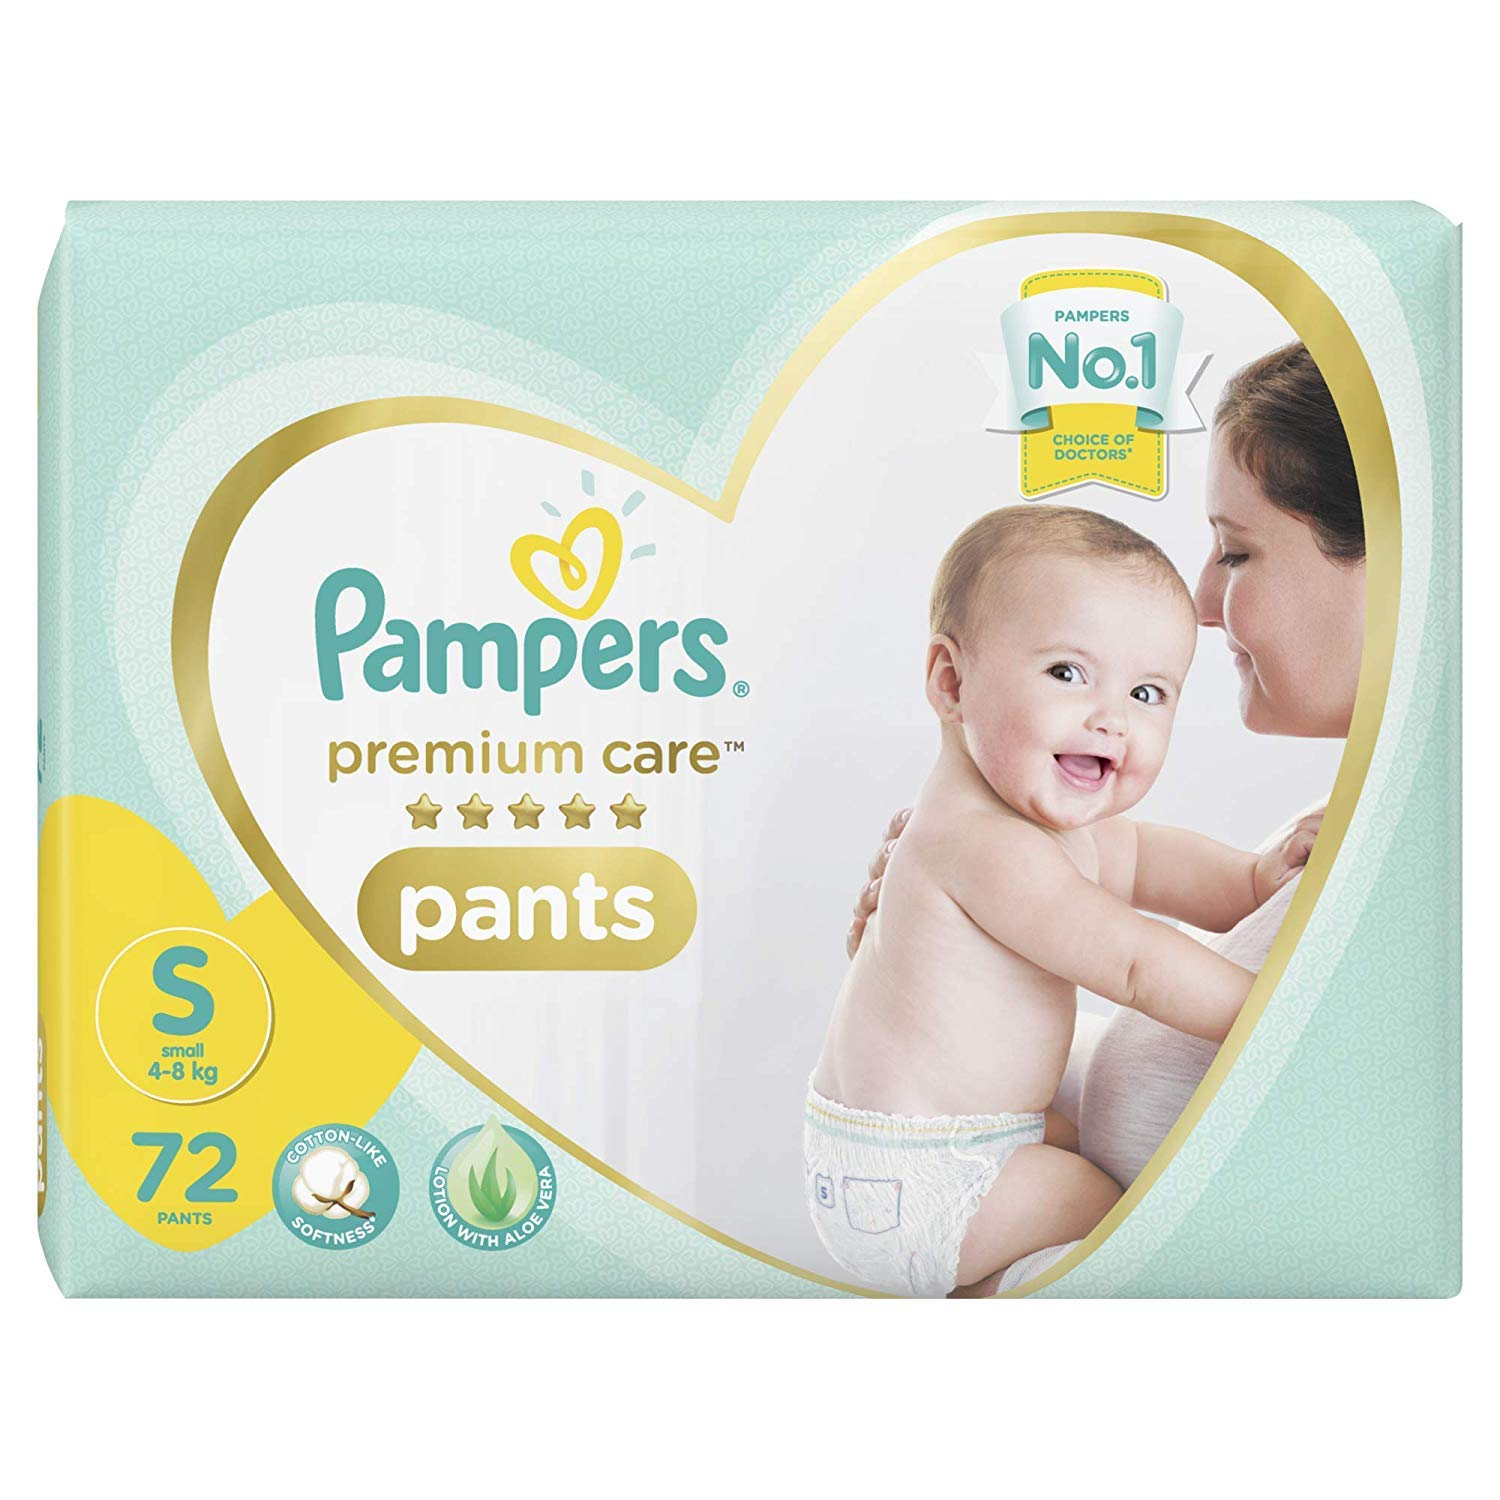 Pampers Premium Care Pants Diapers, Small, S 72 Count